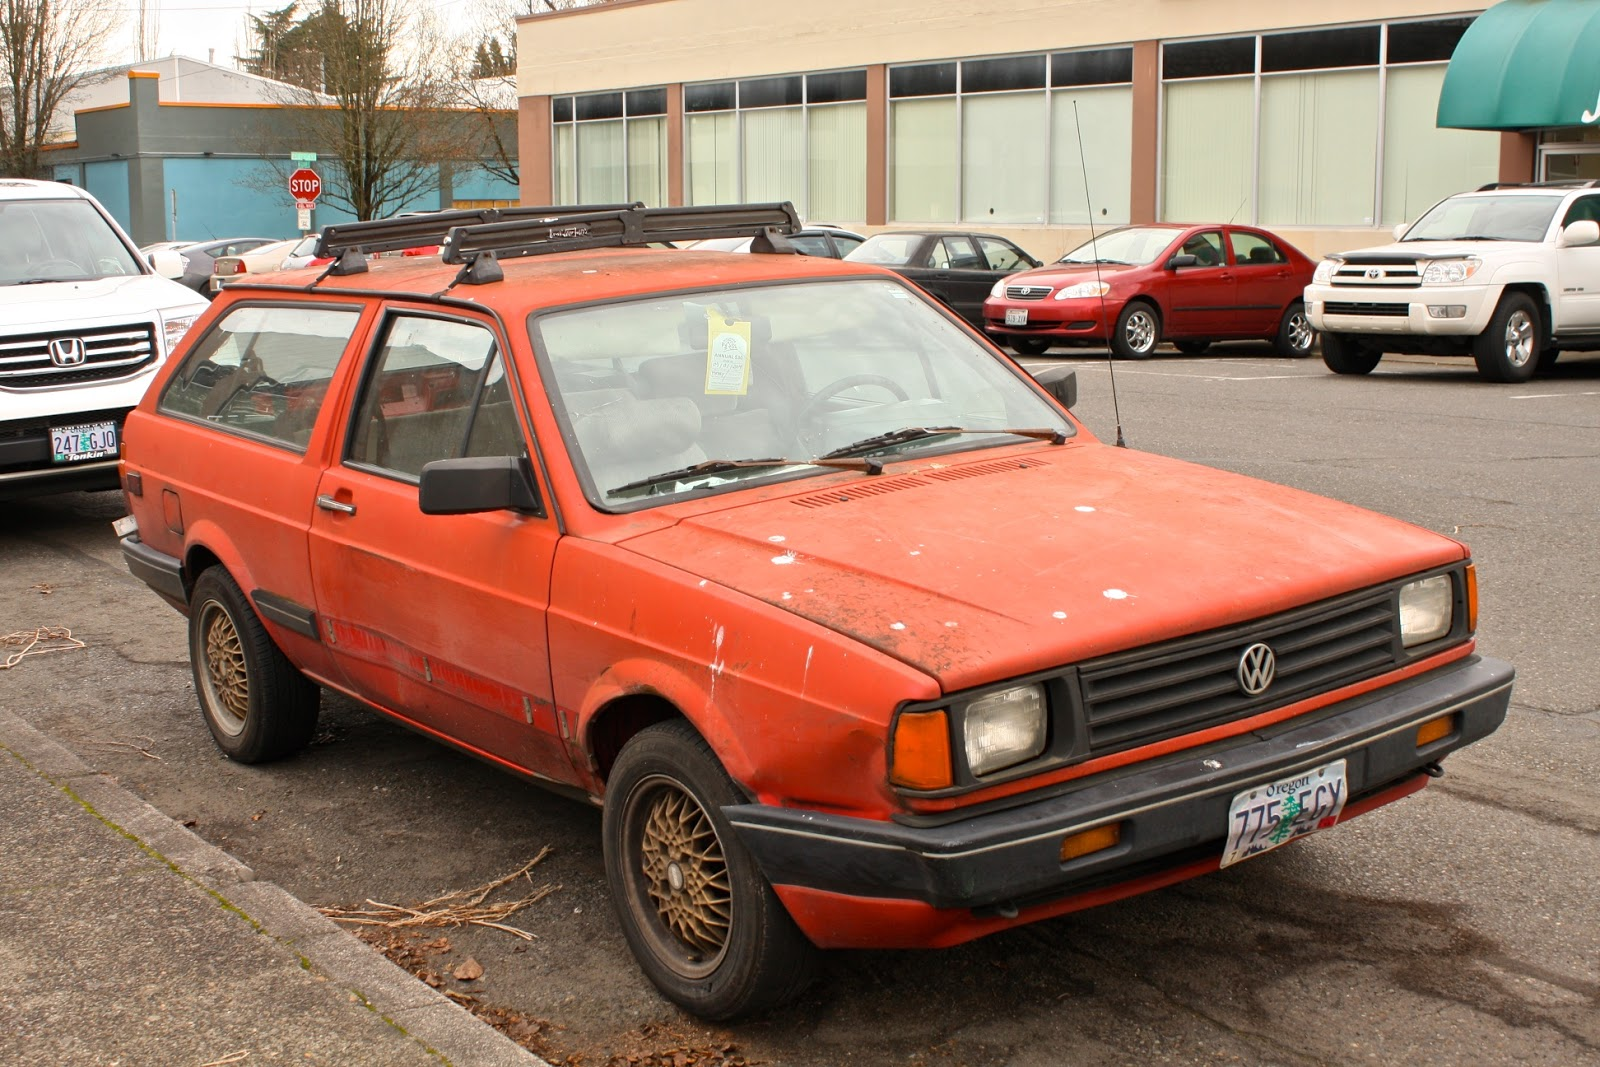 OLD PARKED CARS.: 1988 Volkswagen Fox GL Wagon